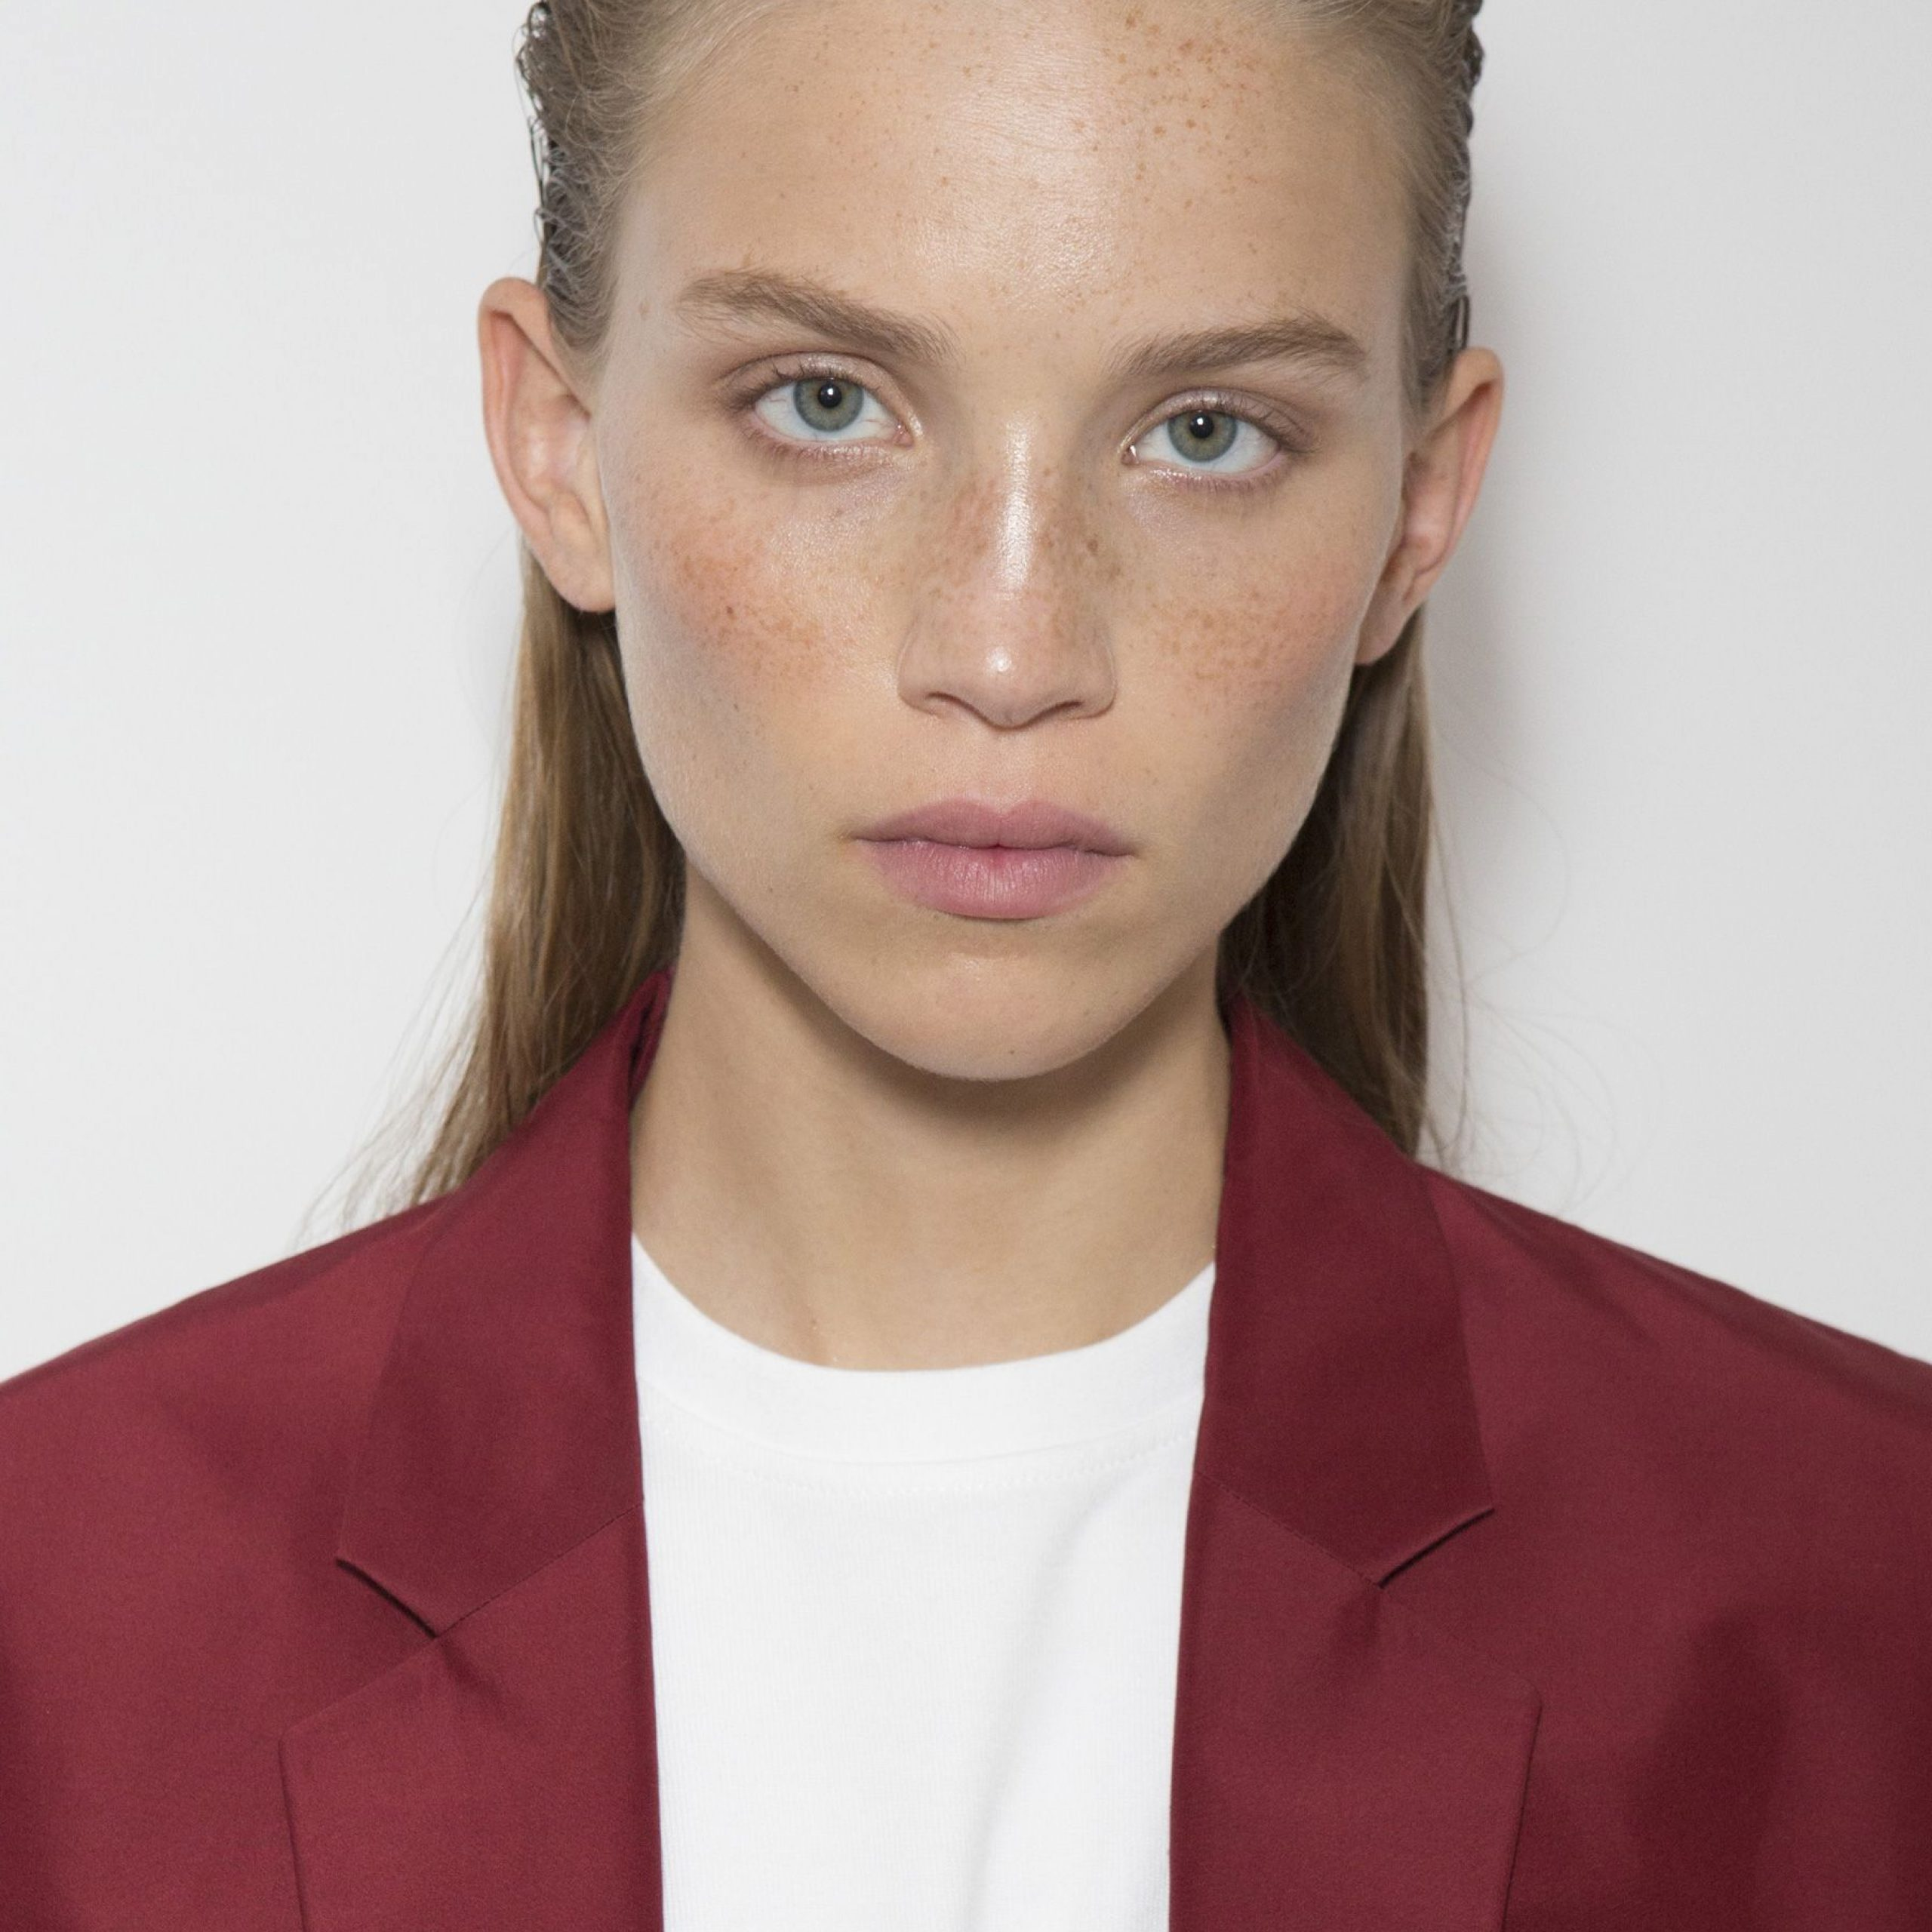 The Best Hair Looks From The Spring 2019 Runways – Spring Throughout Well Known Vibrant Feathered Look Medium Shag Hairstyles (View 13 of 20)